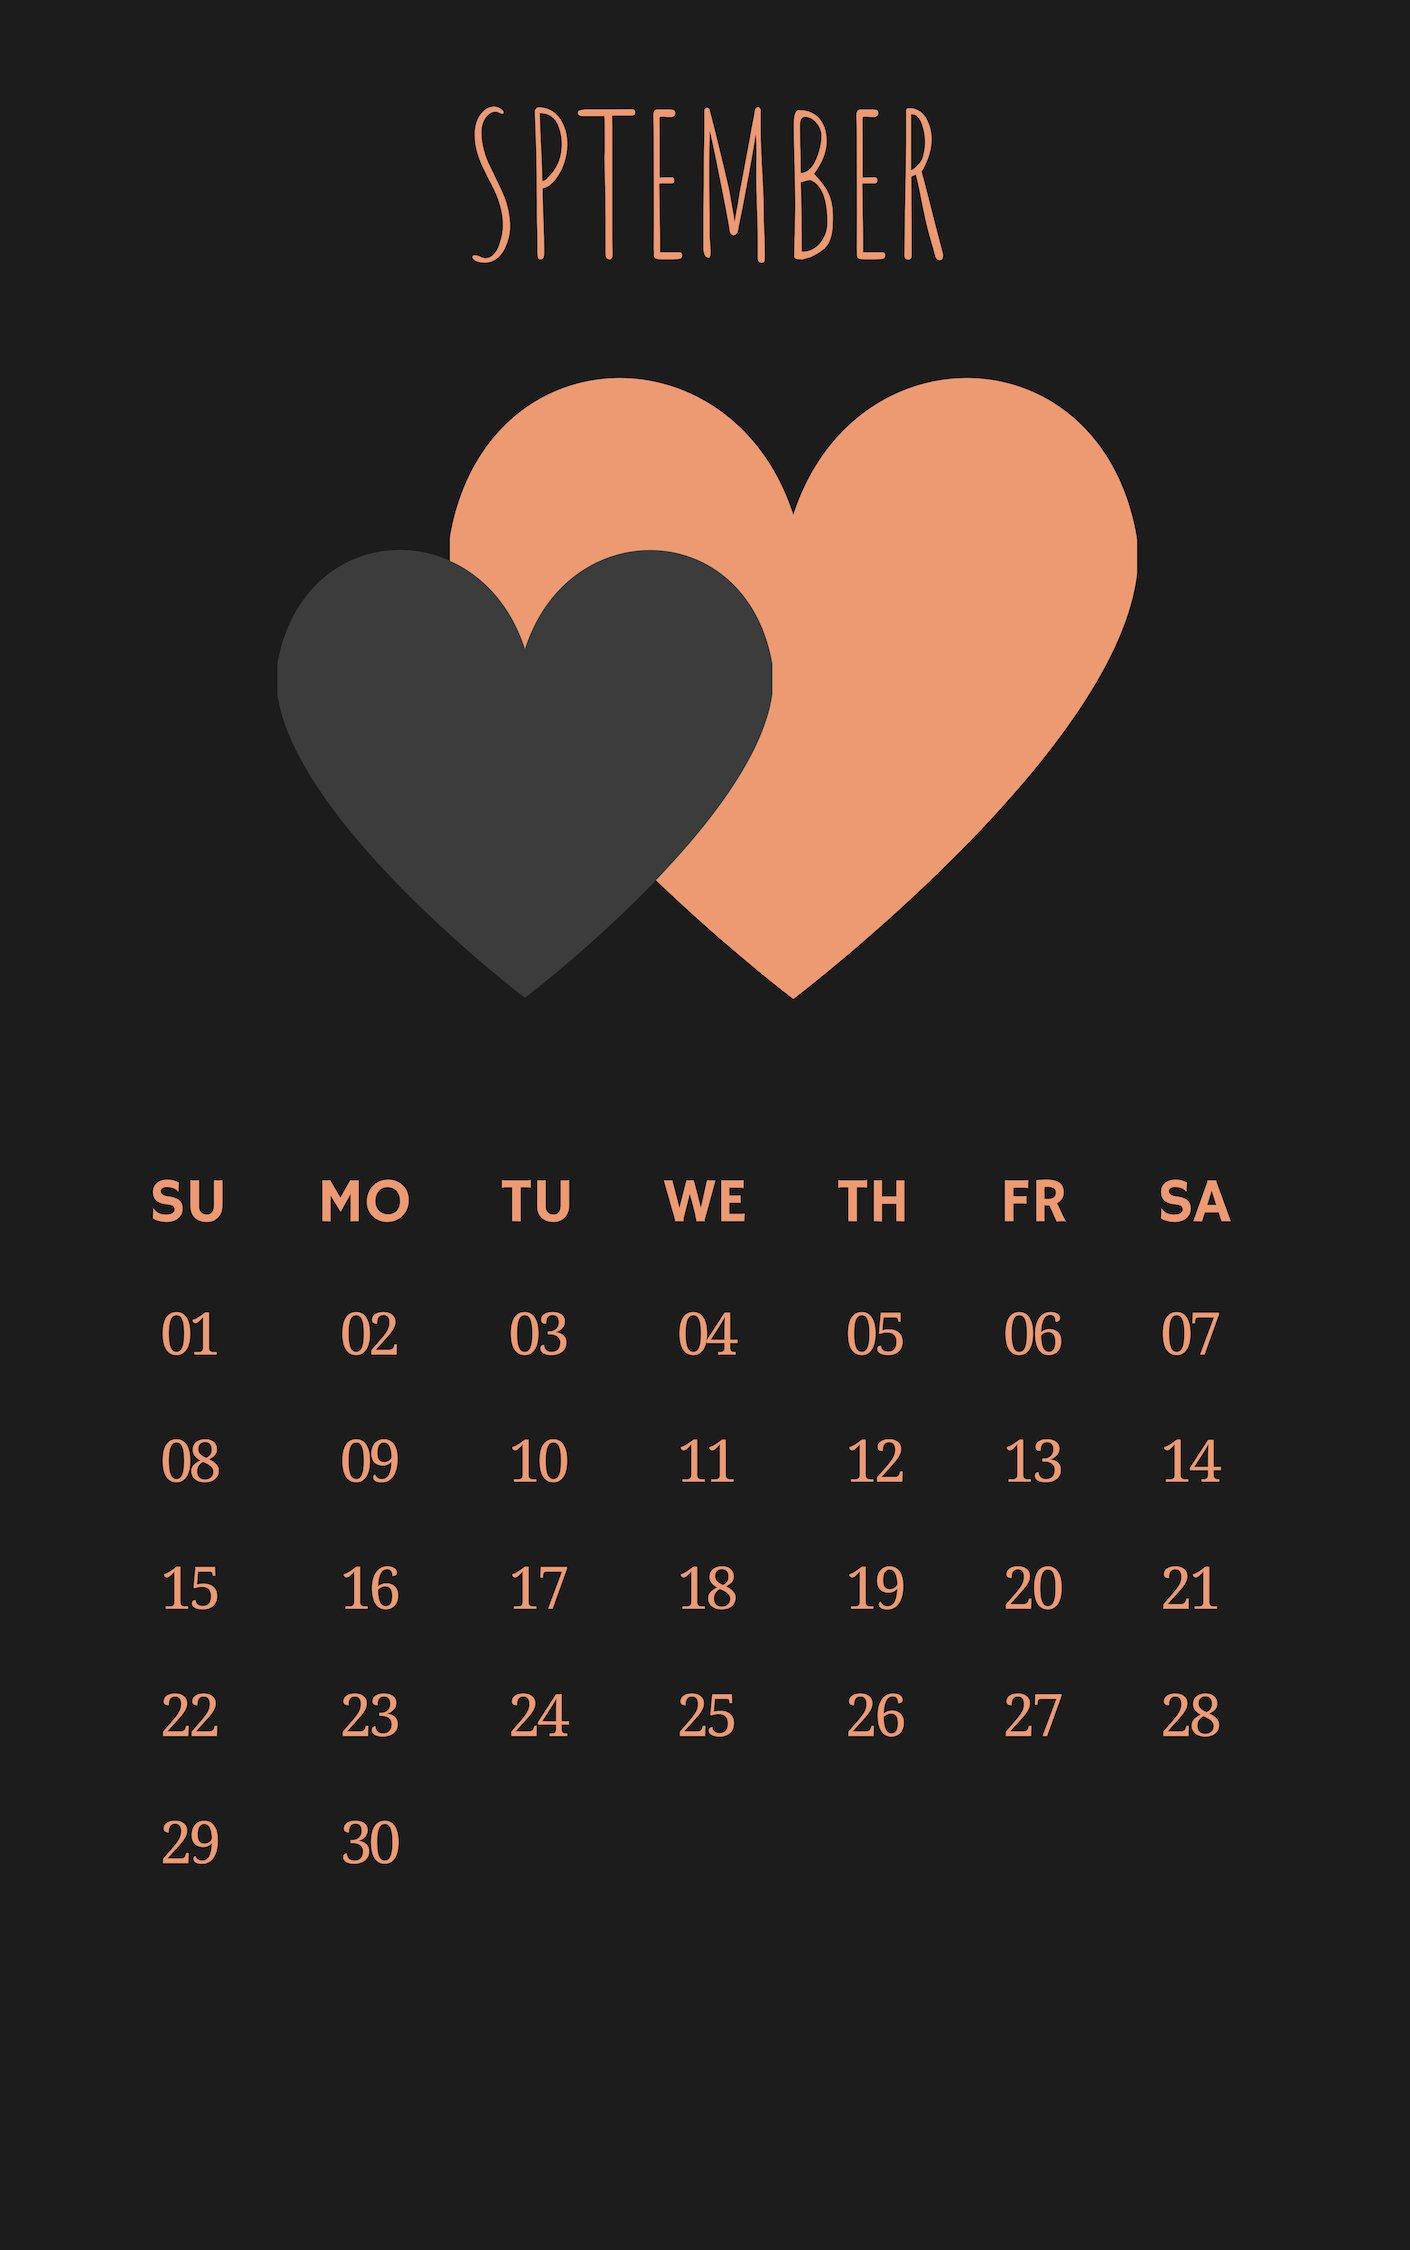 Free September 2019 iPhone Calendar